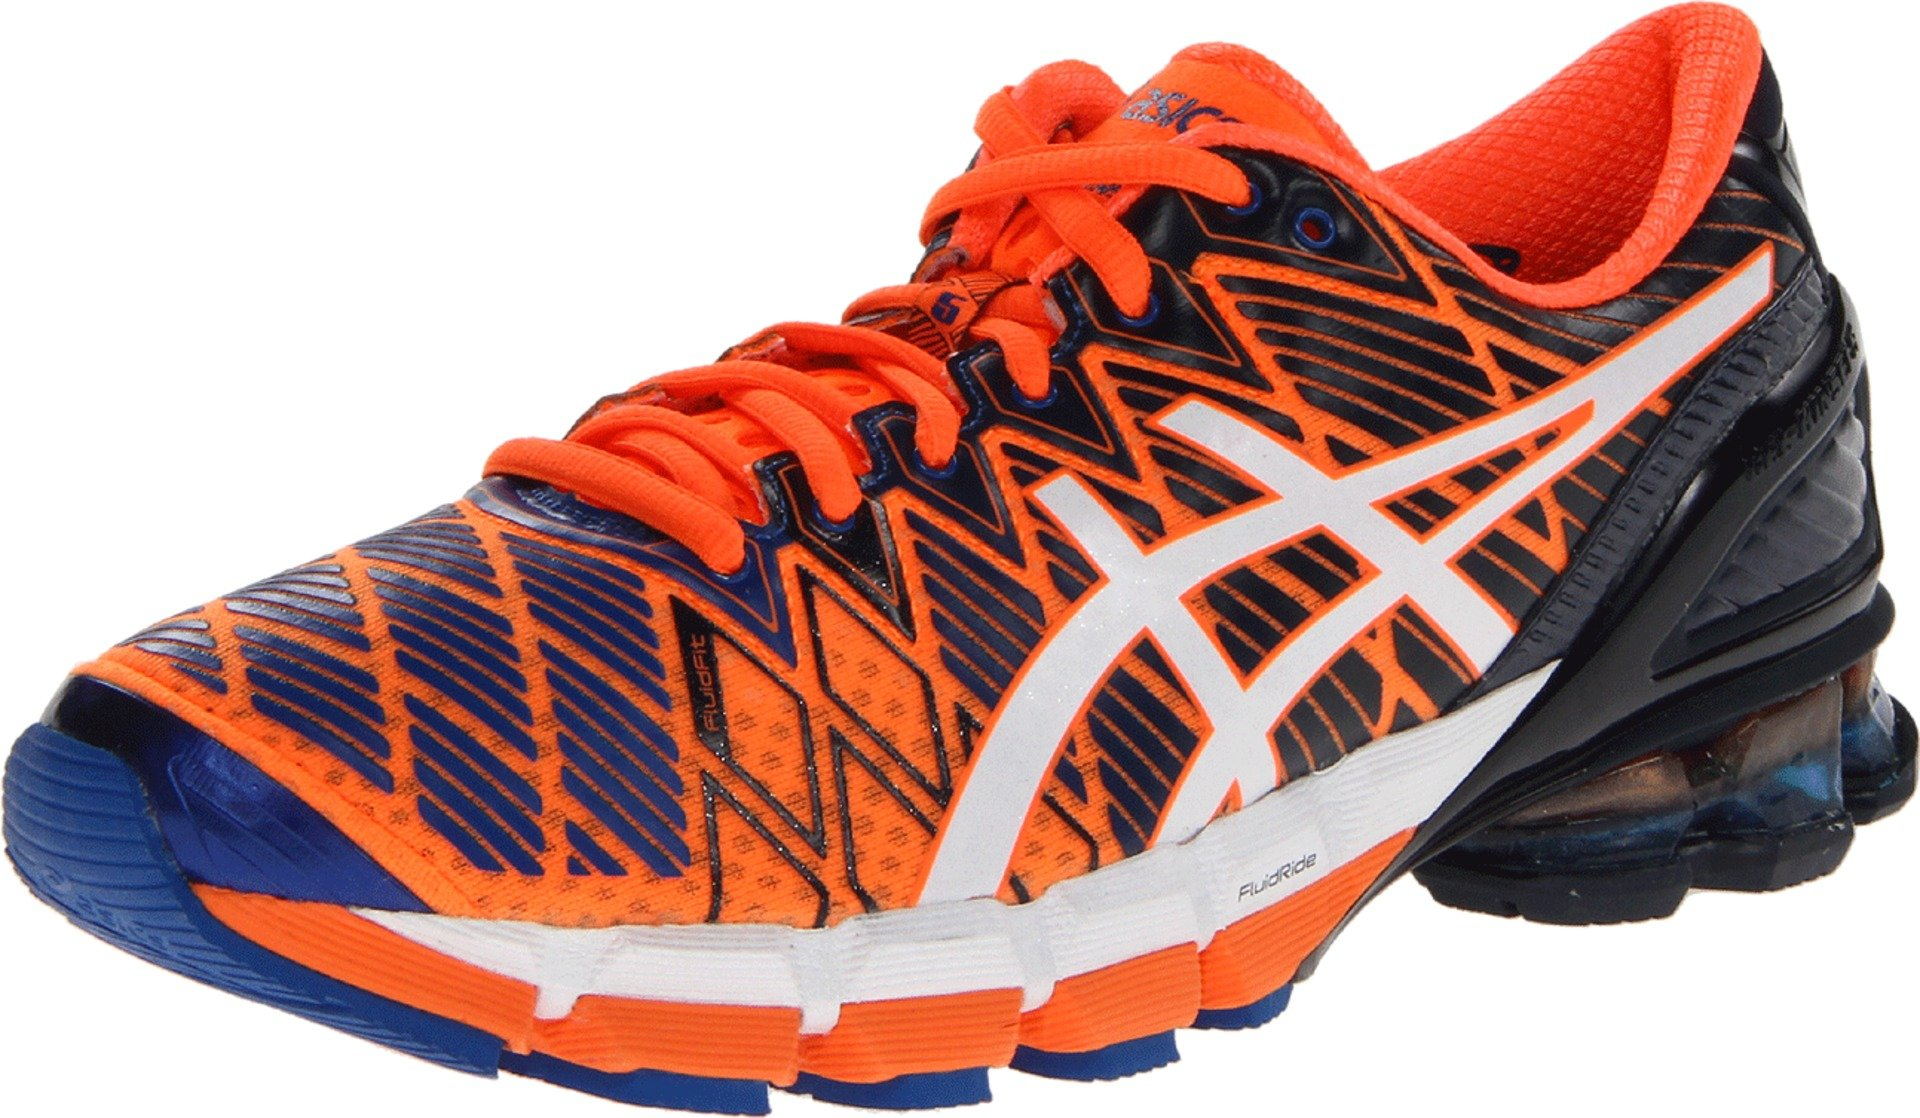 132c82357a3 Galleon - ASICS Men s Gel-Kinsei 5 Running Shoe